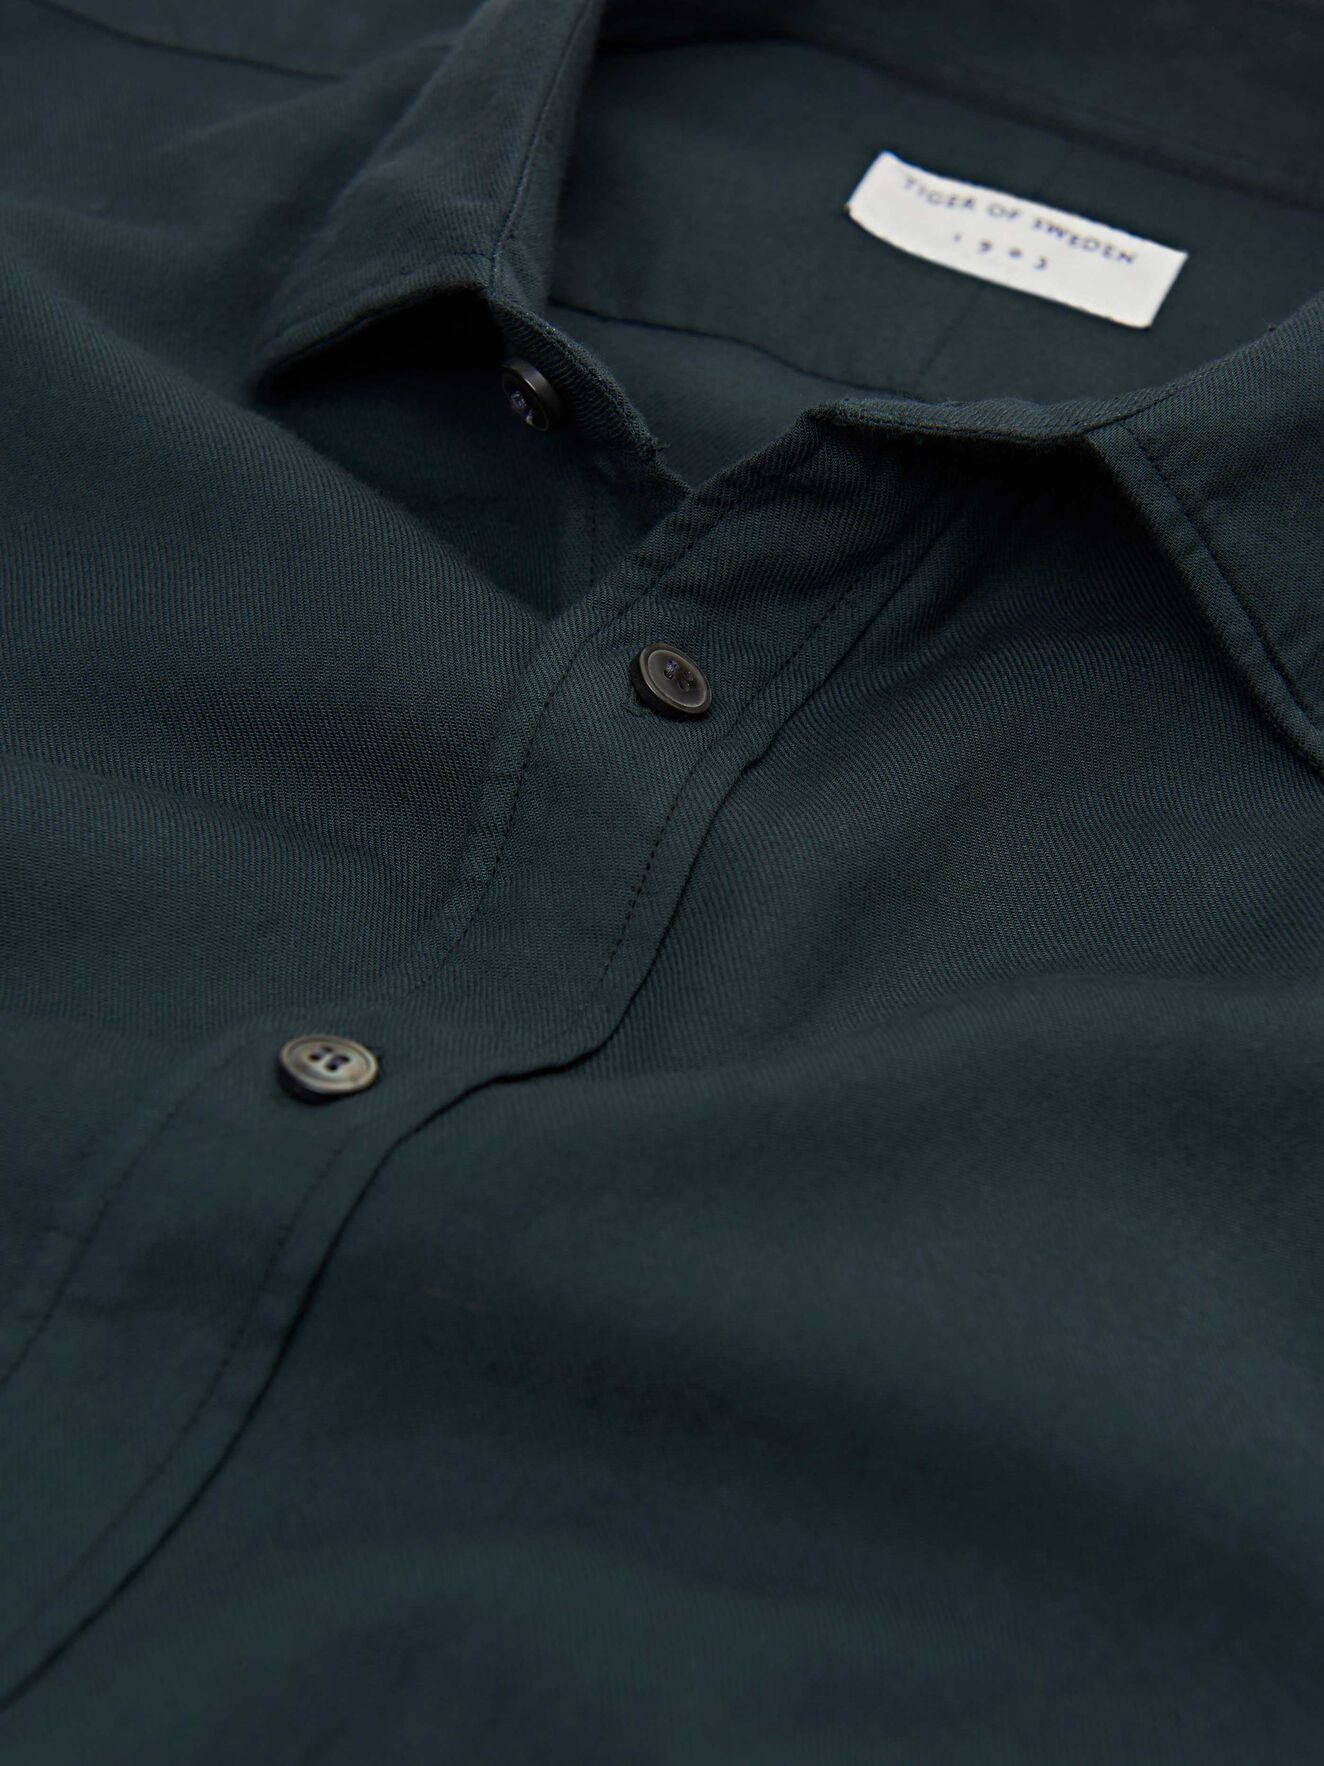 Fridolf Shirt in Scarab Green from Tiger of Sweden